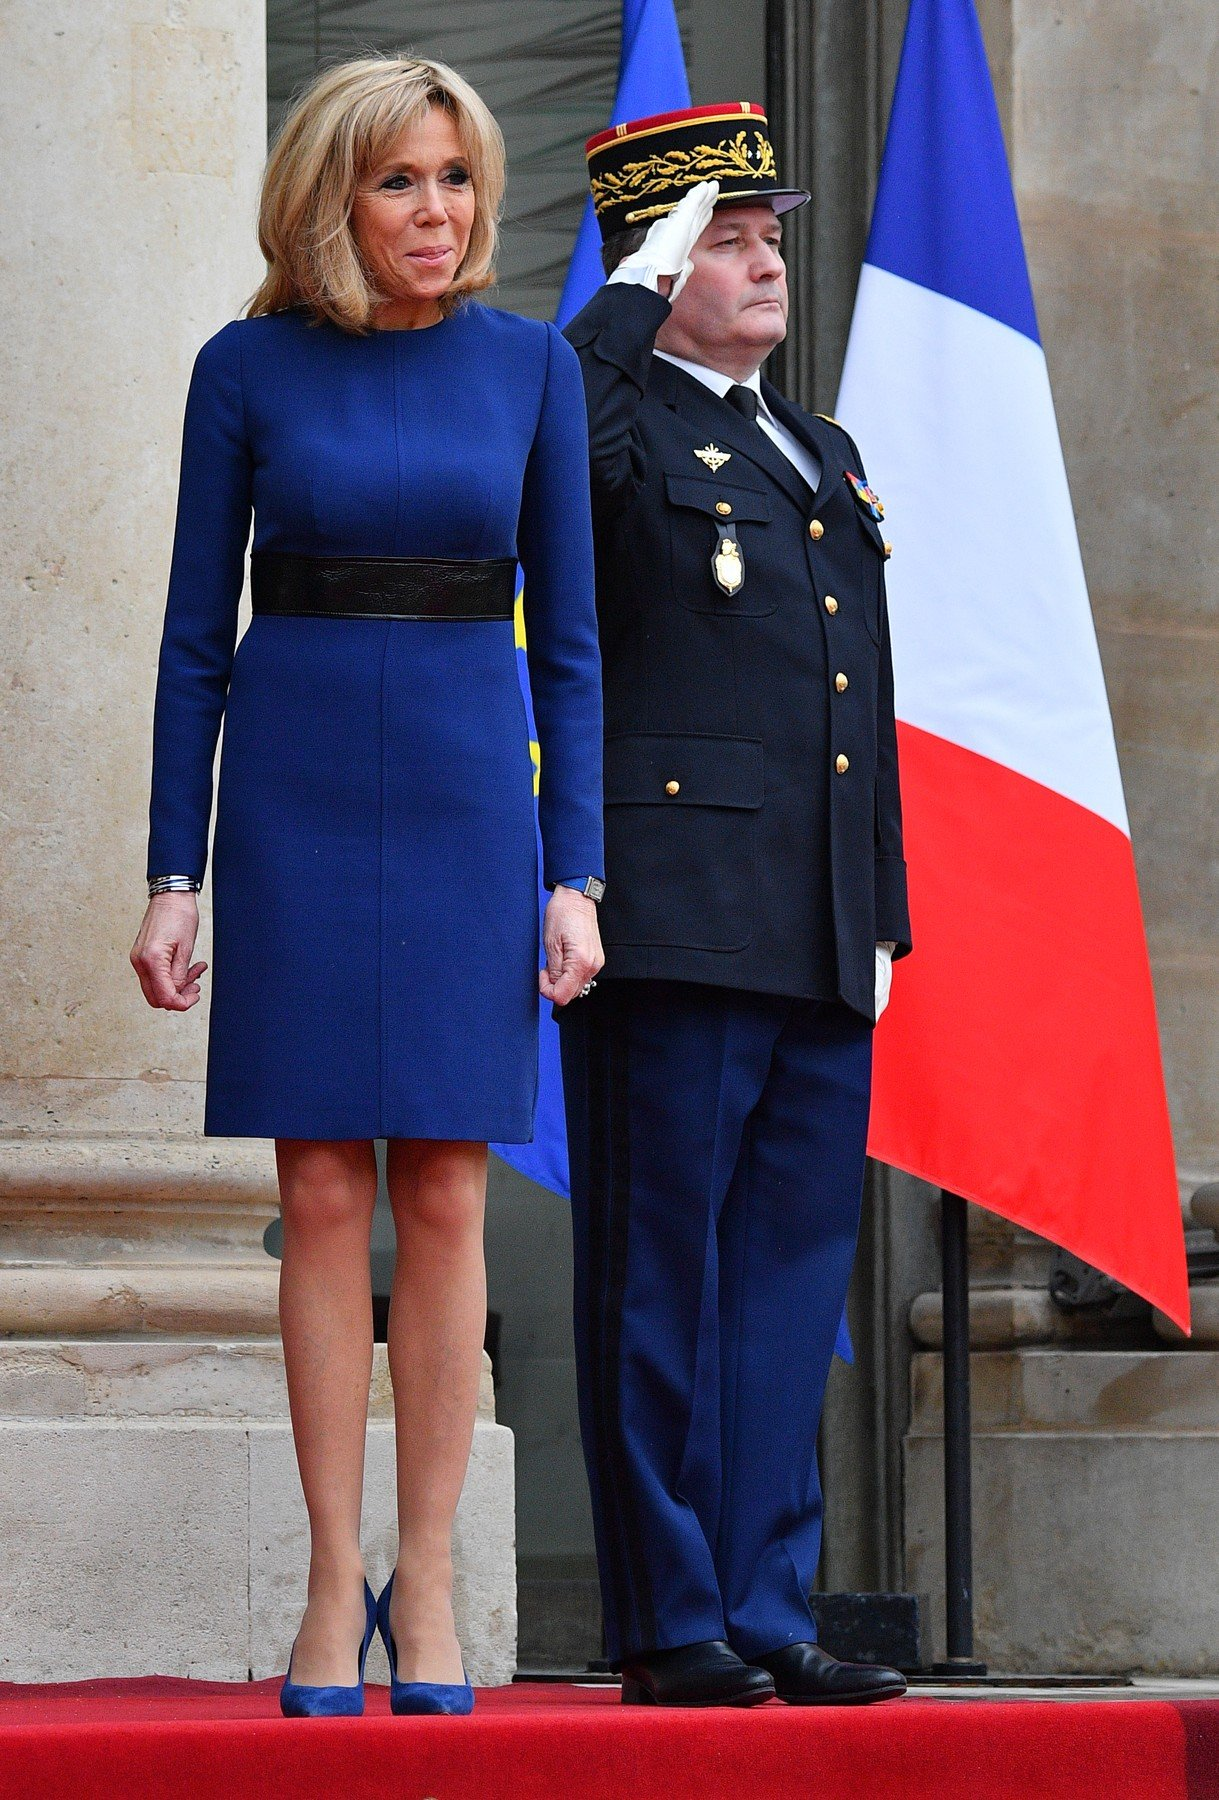 Grand Duke Henri and Duchess Maria Teresa of Luxembourg are welcomed by French President Emmanuel Macron and his wife Brigitte Macron before a meeting at the Elysee palace in Paris on March 19, 2018., Image: 366380371, License: Rights-managed, Restrictions: , Model Release: no, Credit line: Profimedia, Abaca